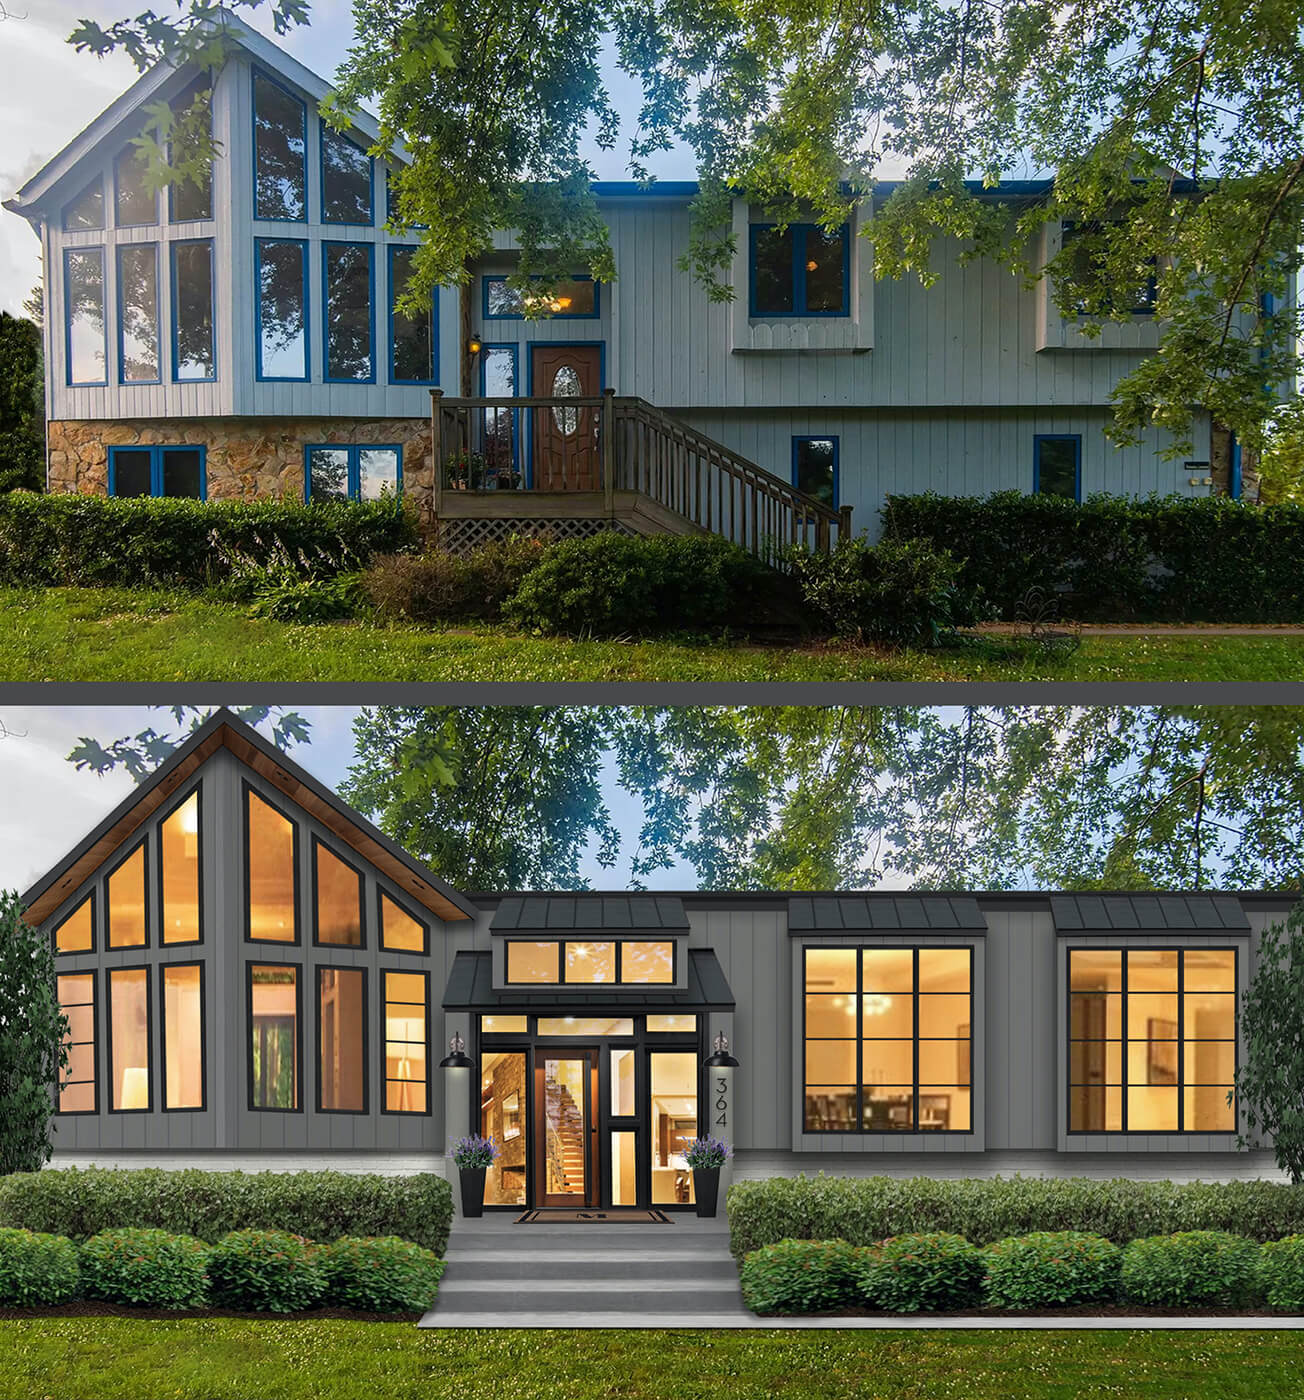 Before and after images of brick&batten home project including new windows and exterior features.